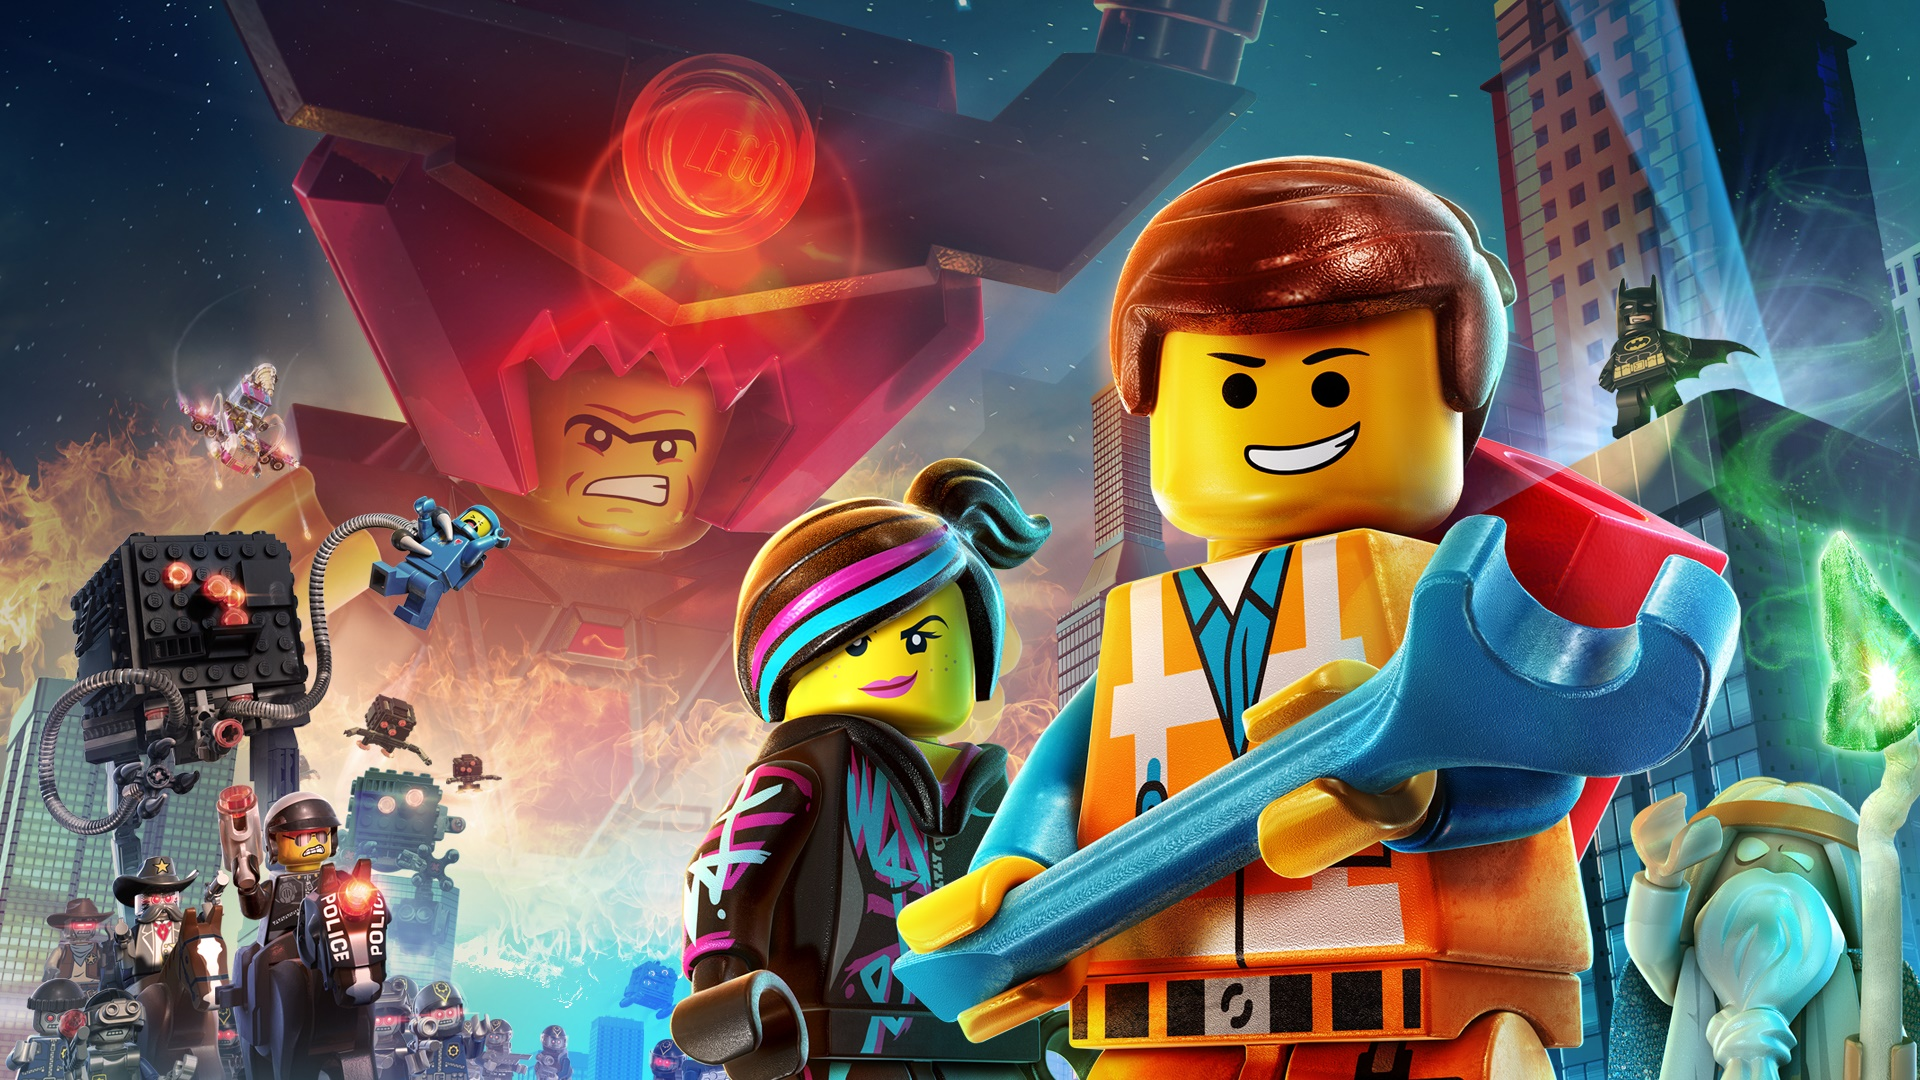 The Lego Movie 2014 Movie 2645.88 Kb